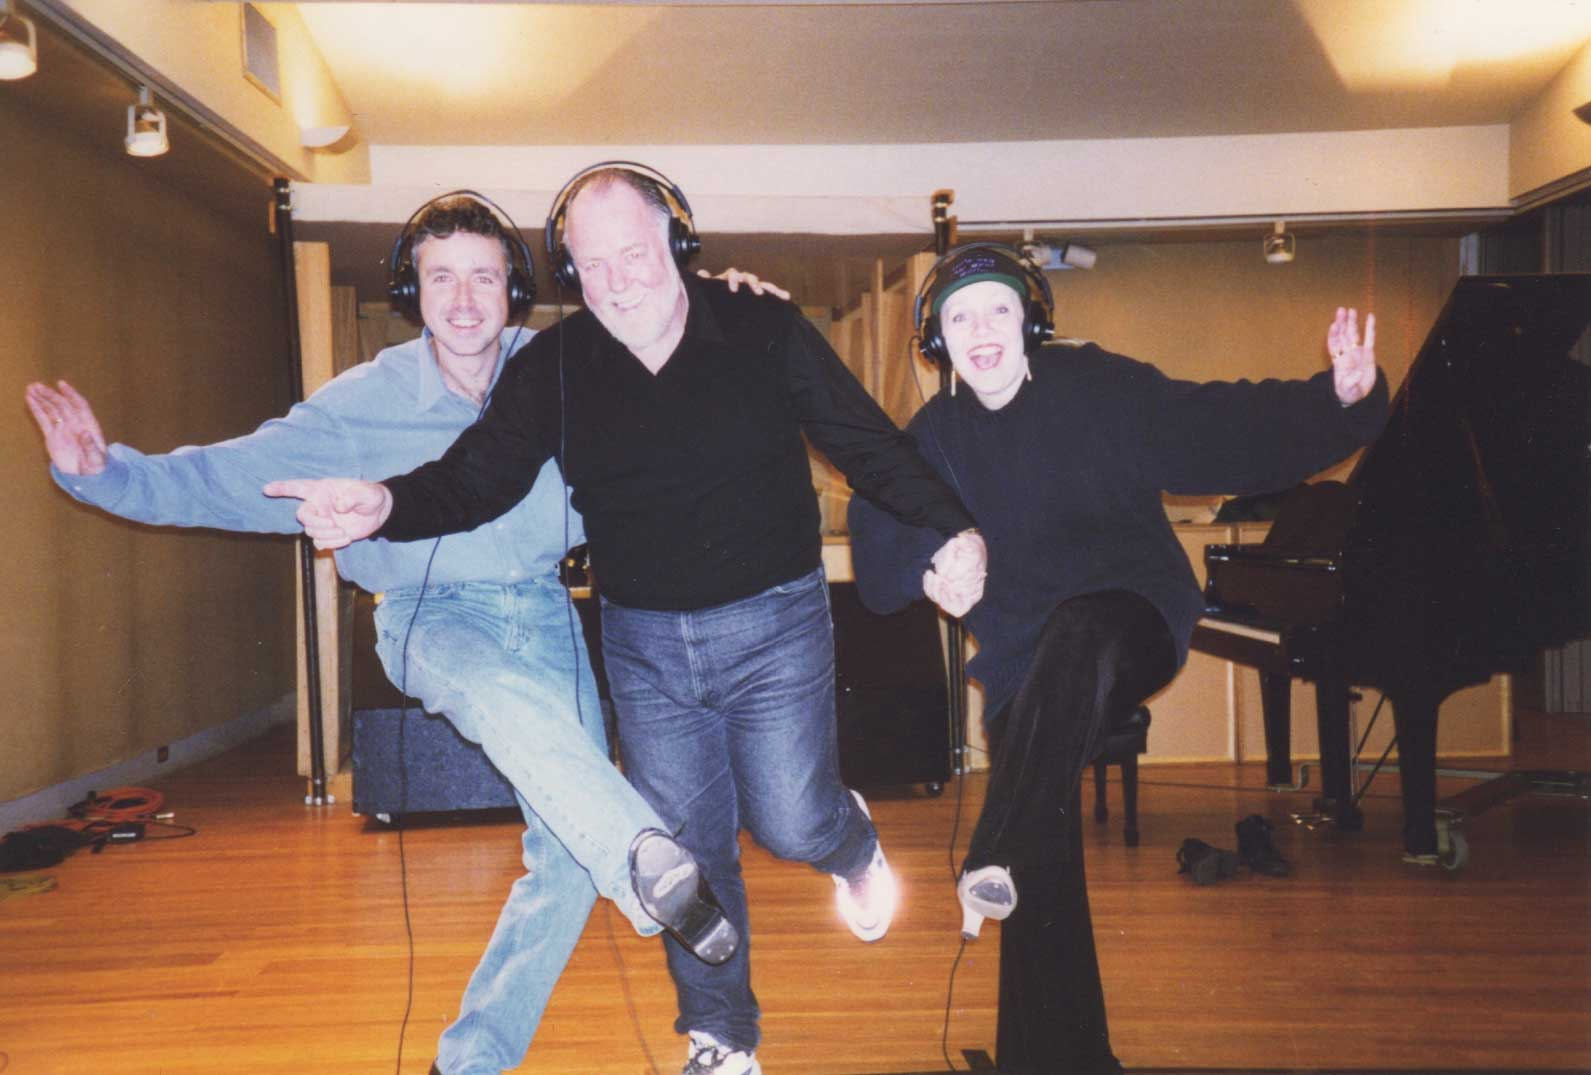 Chris Peterson, Paul Gemignani, and Susan Stroman in a recording session for the album of Crazy for You.